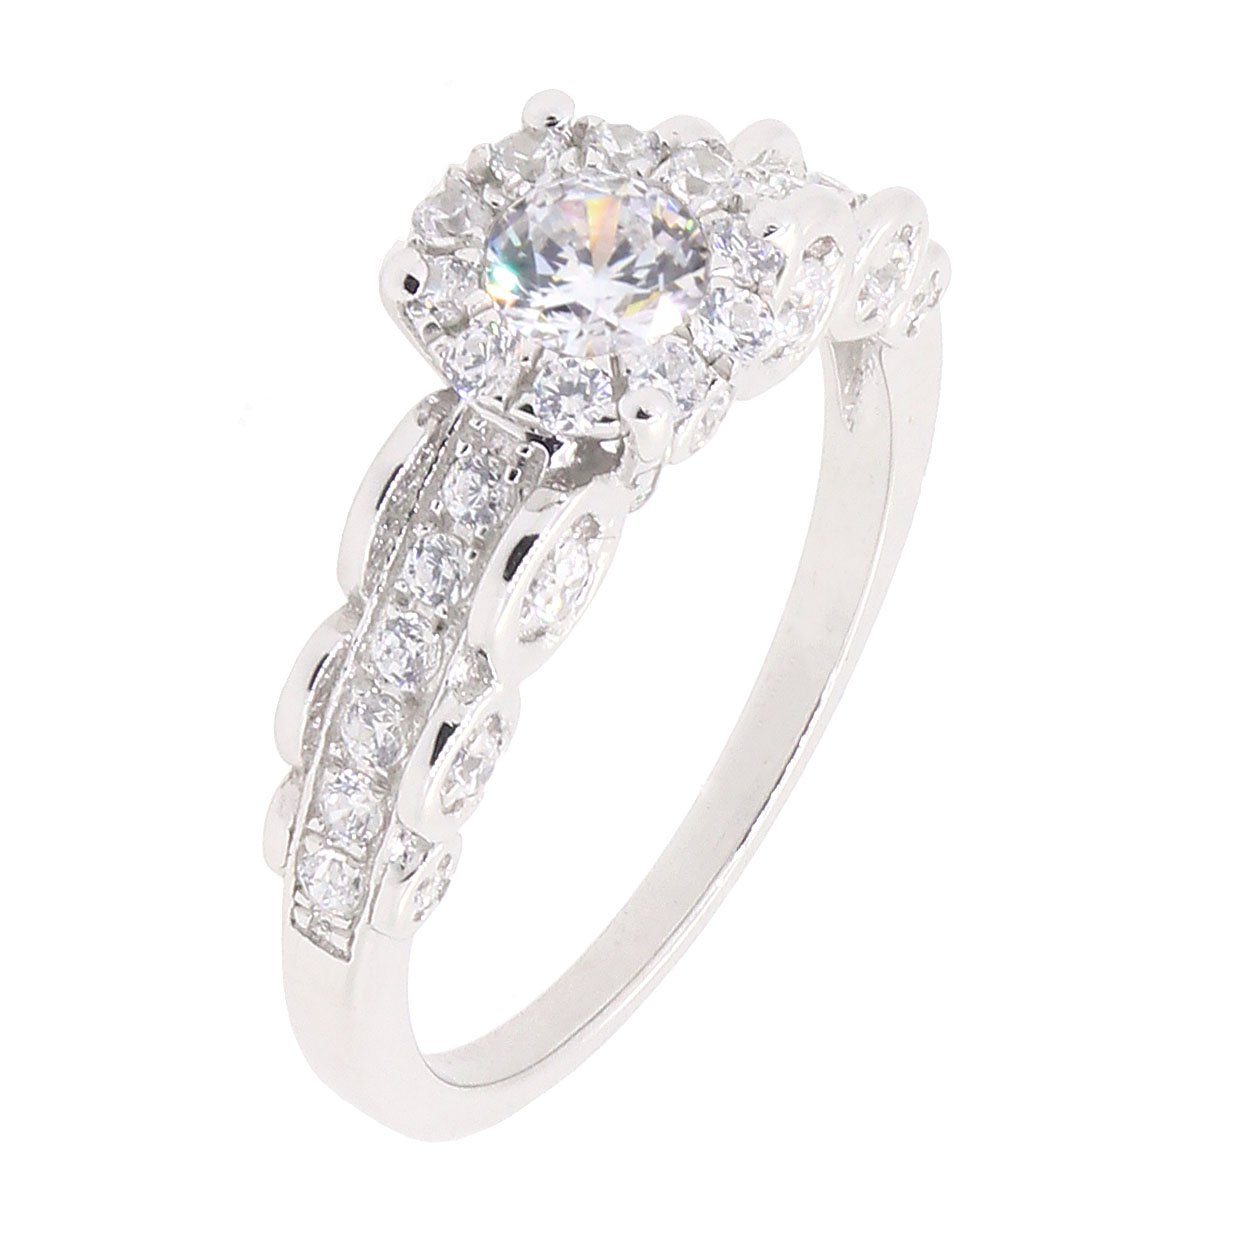 BL Jewelry Sterling Silver 2 Pieces Solitaire CZ Bridal Engagement Wedding Halo Ring Set 4//5 CT